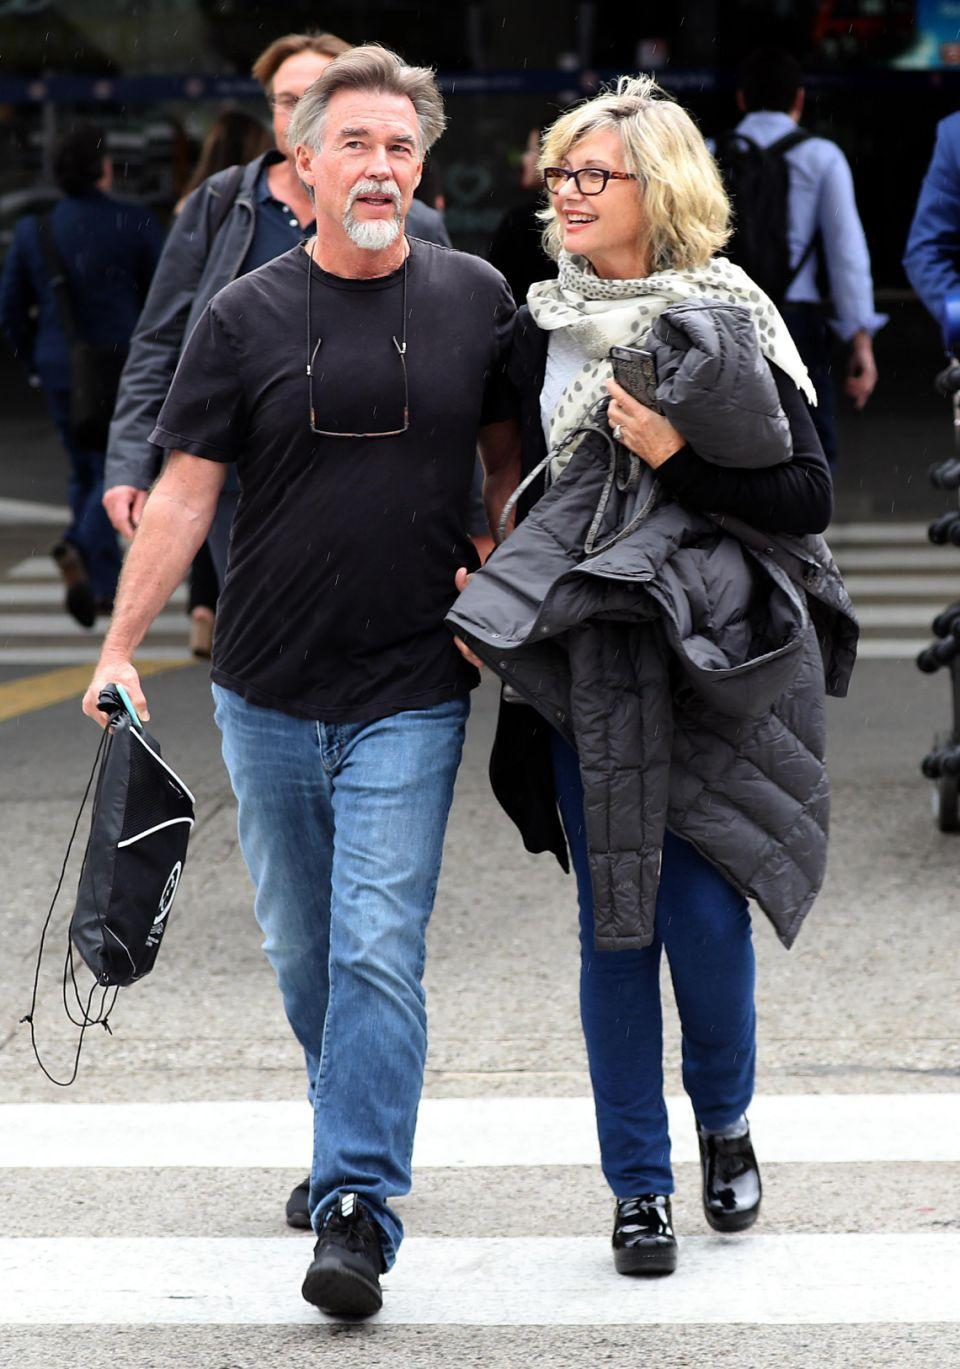 It is the first time Olivia has been seen publicly since admitting to using medicinal cannabis amidst her current cancer battle. Source: Diimex